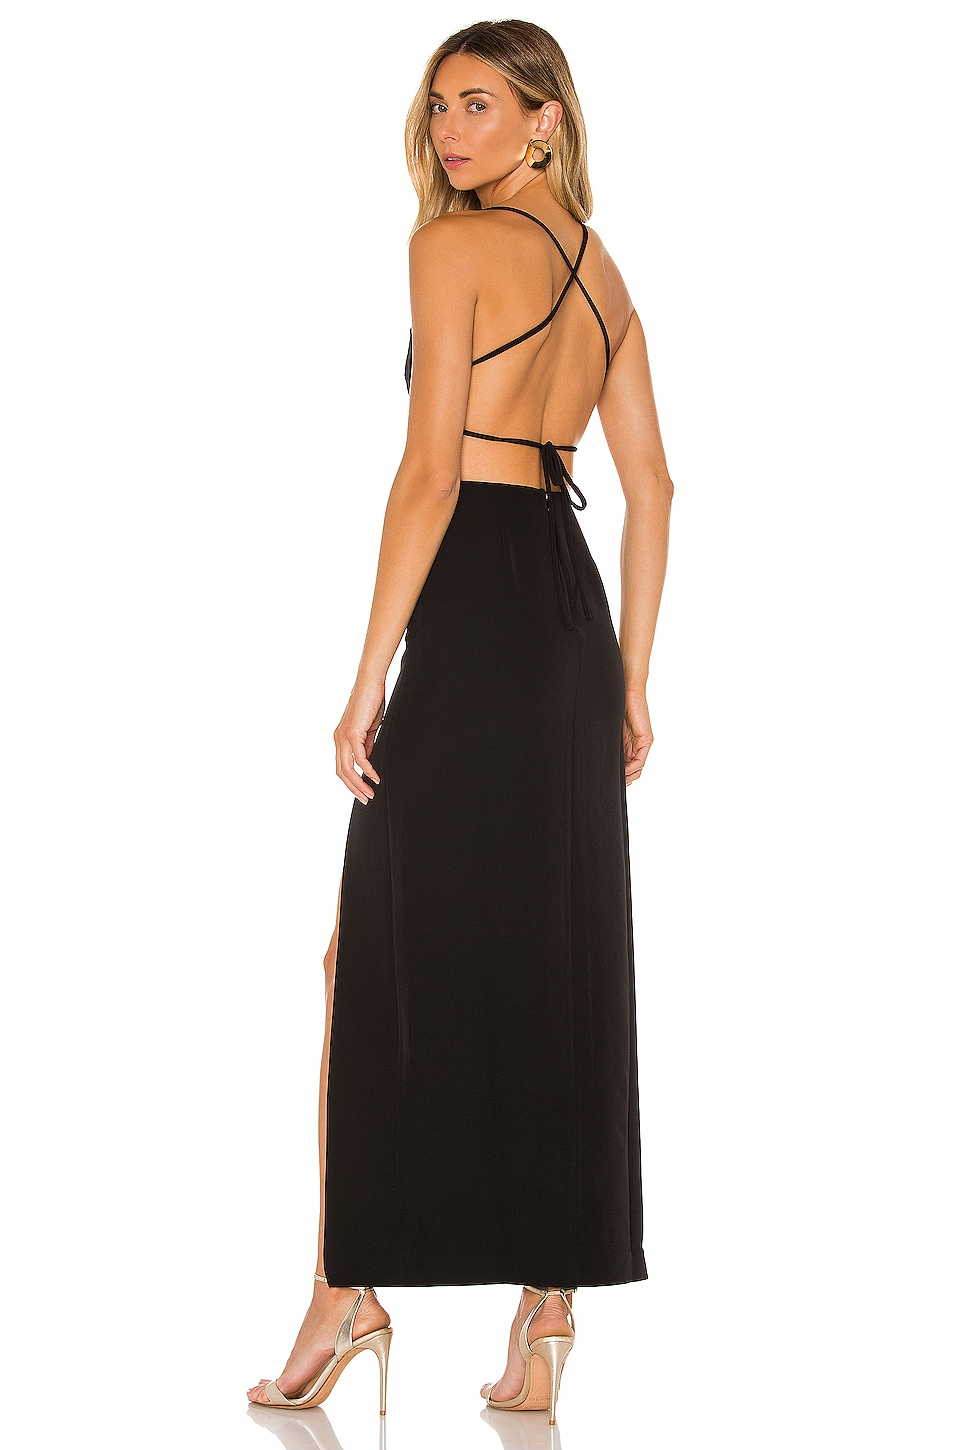 NBD Prosecco Gown in Black